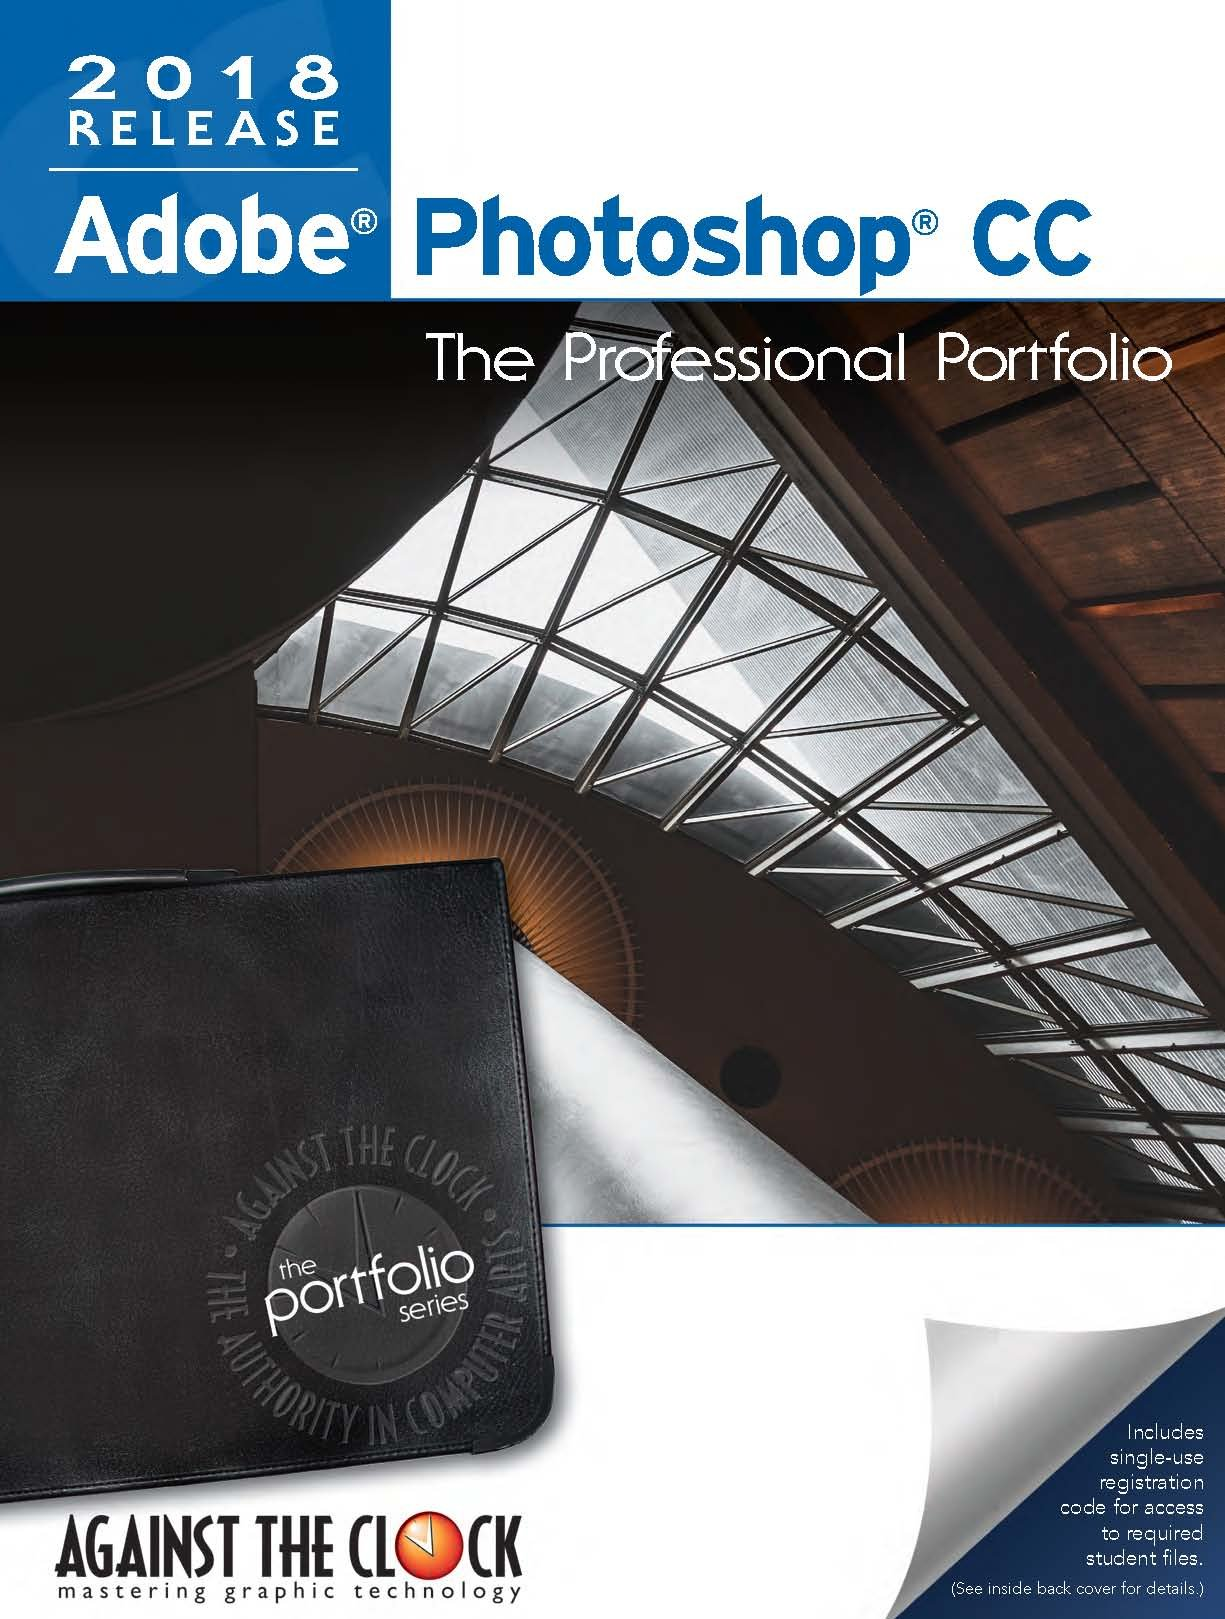 Adobe Photoshop CC 2018: The Professional Portfolio: Inc